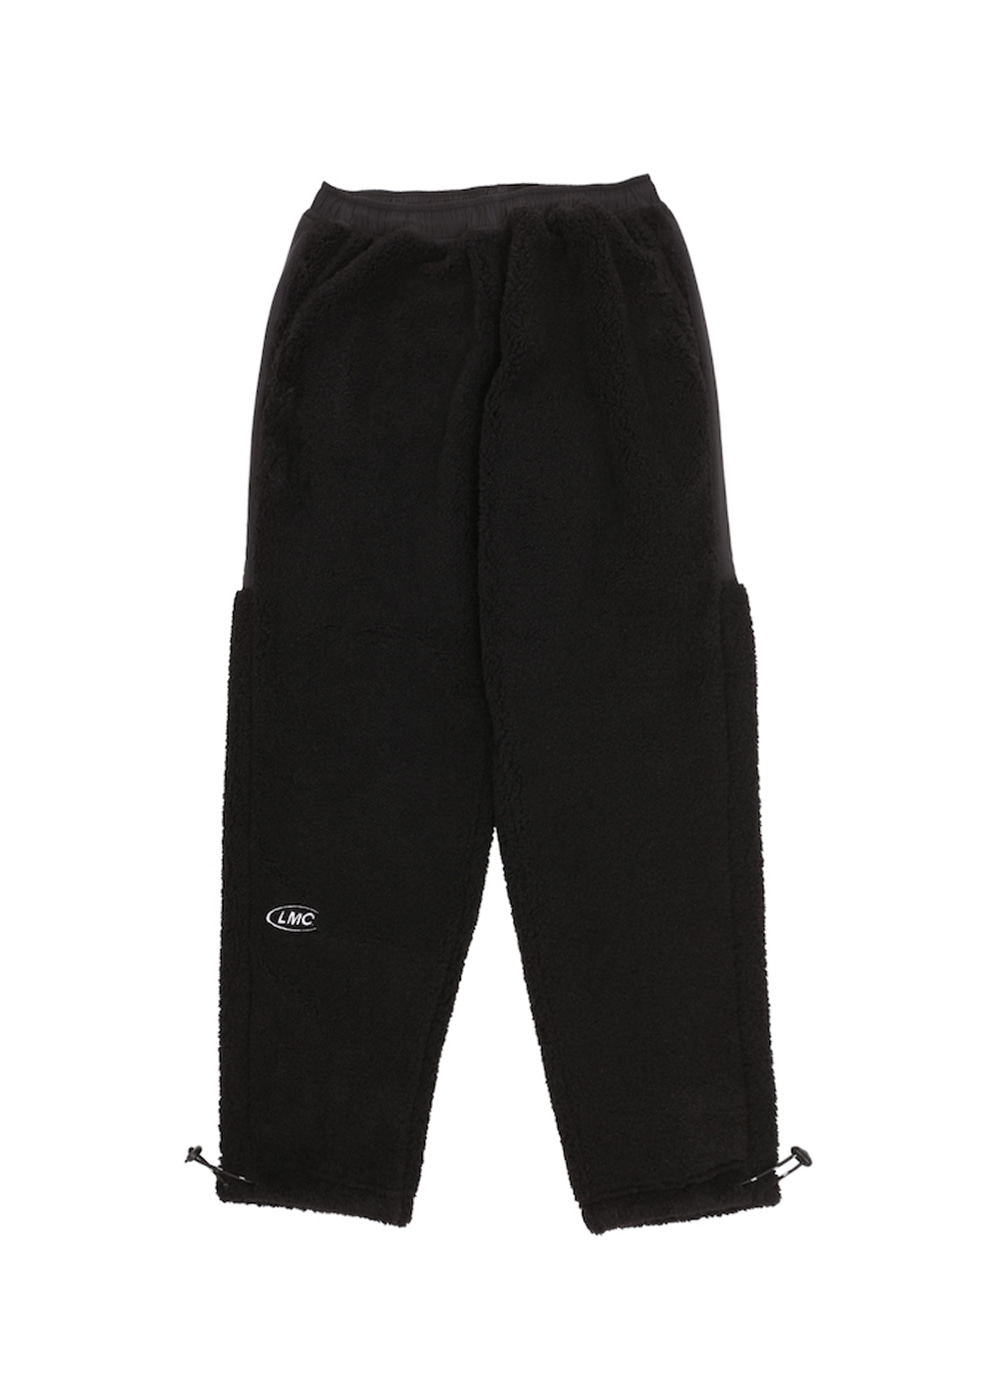 LMC BOA FLEECE SOLID PANTS black